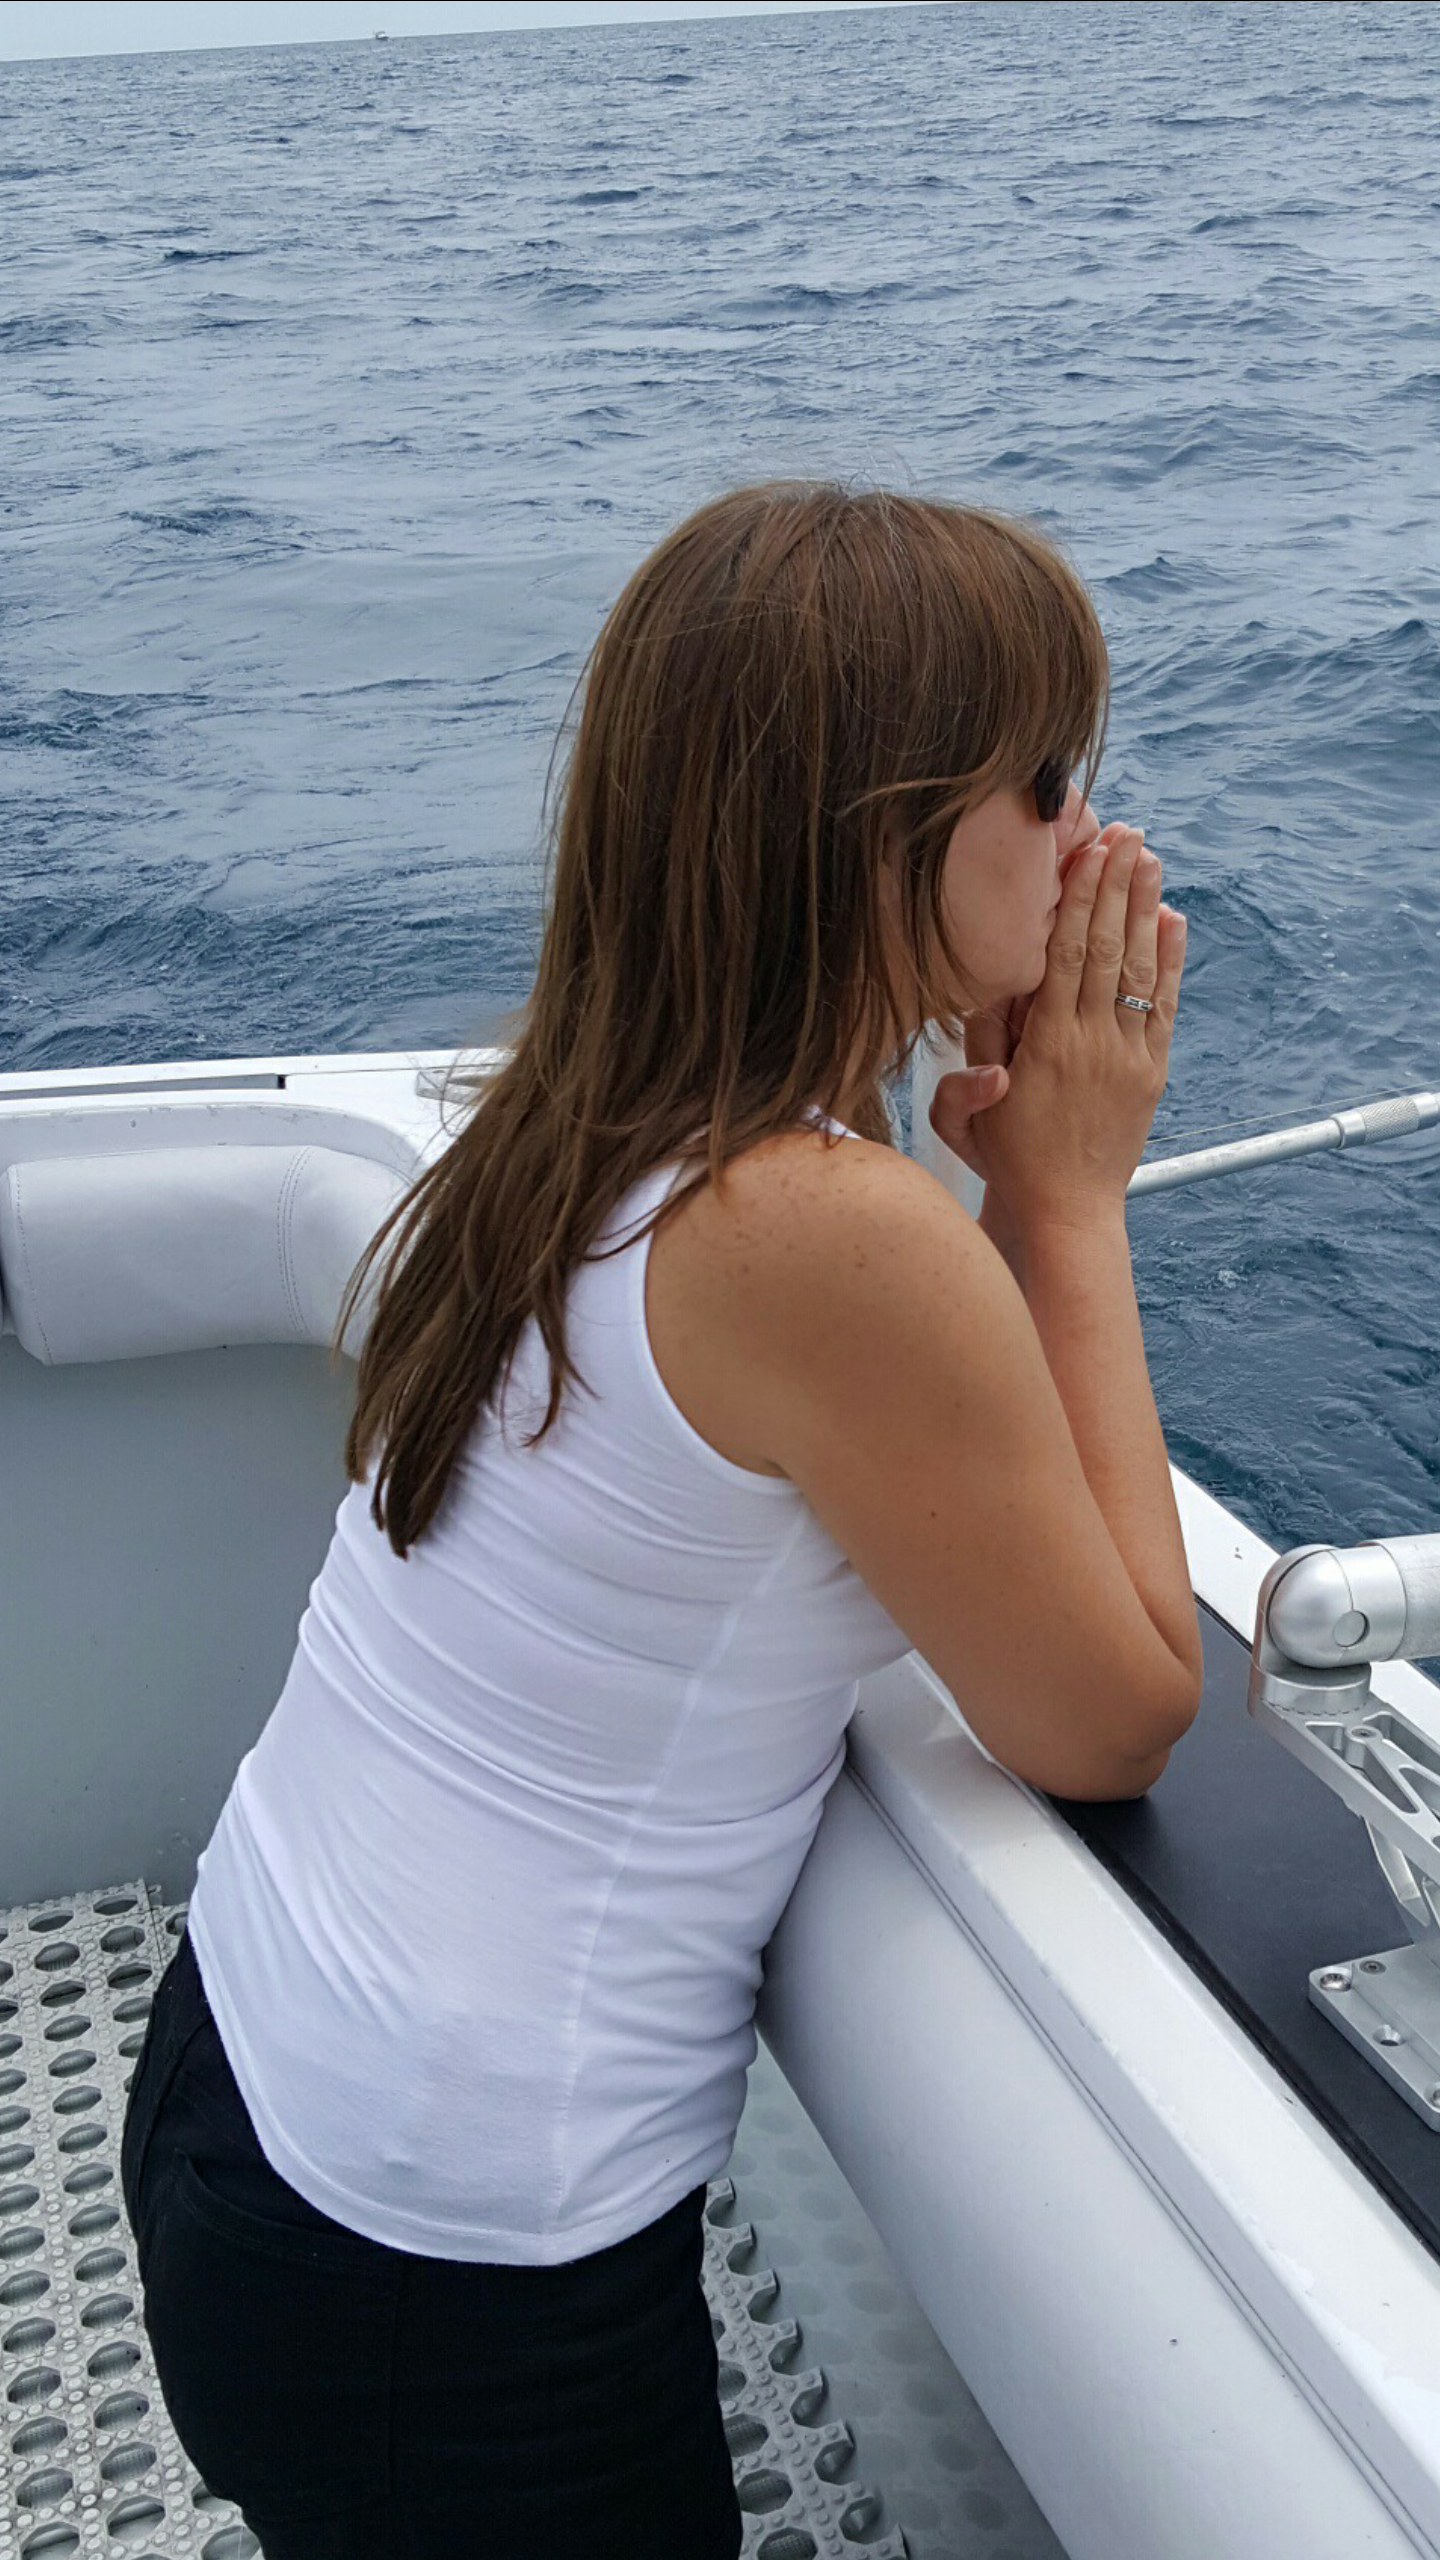 praying for fish